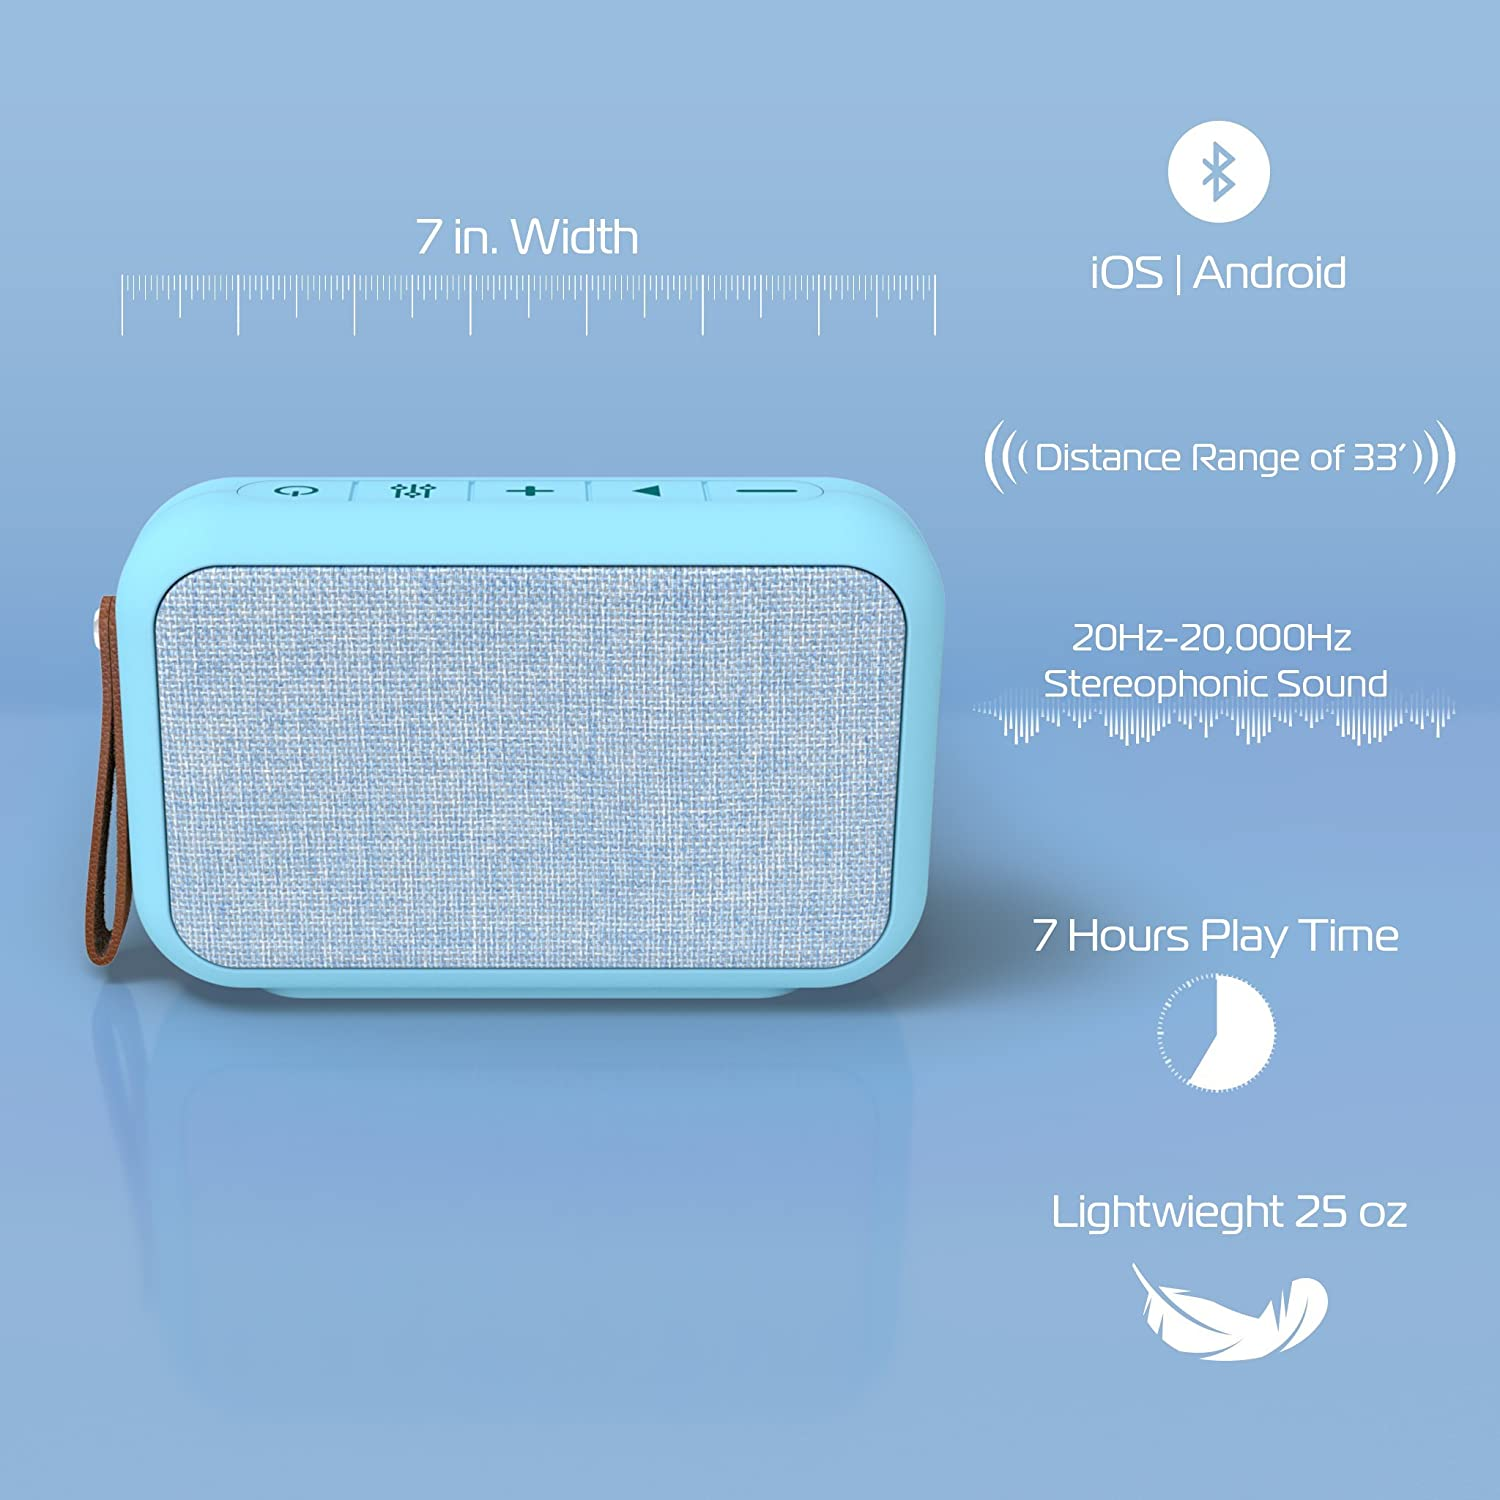 Rectangular Waterproof Bluetooth Fabric Speaker Blue Add Powerful Sound and Ambiance to Any Room Tzumi Studio Series Speaker